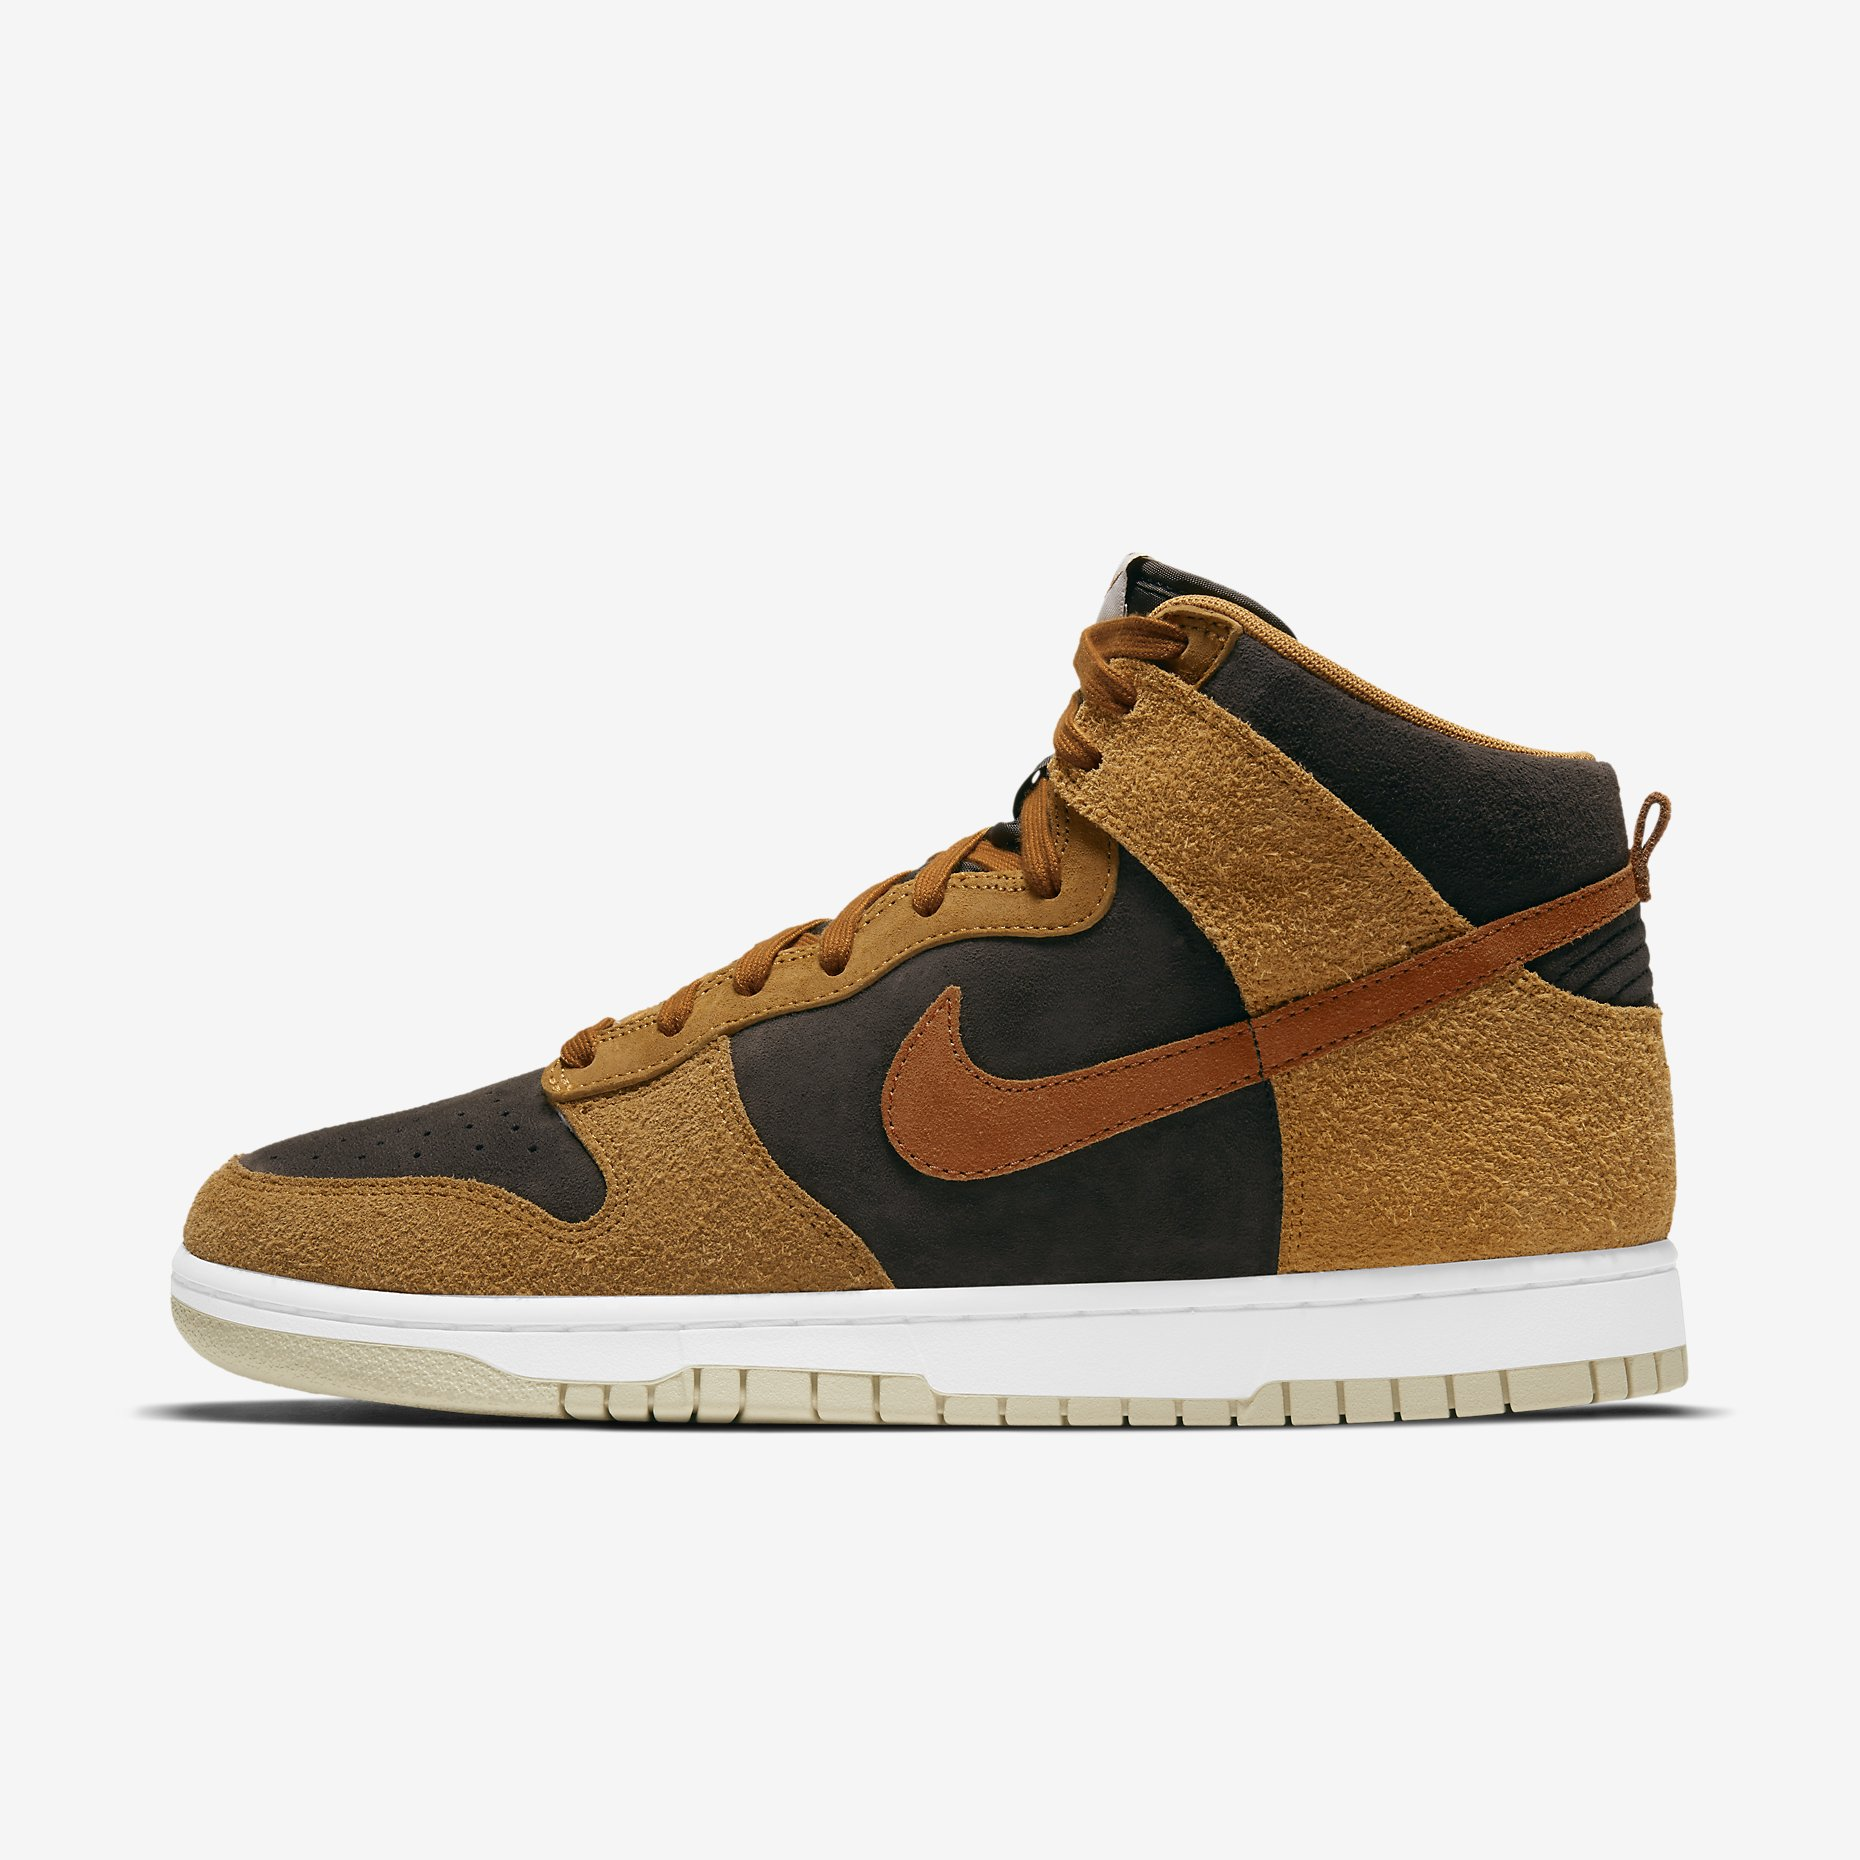 Nike Dunk High PRM 'Dark Russet'}